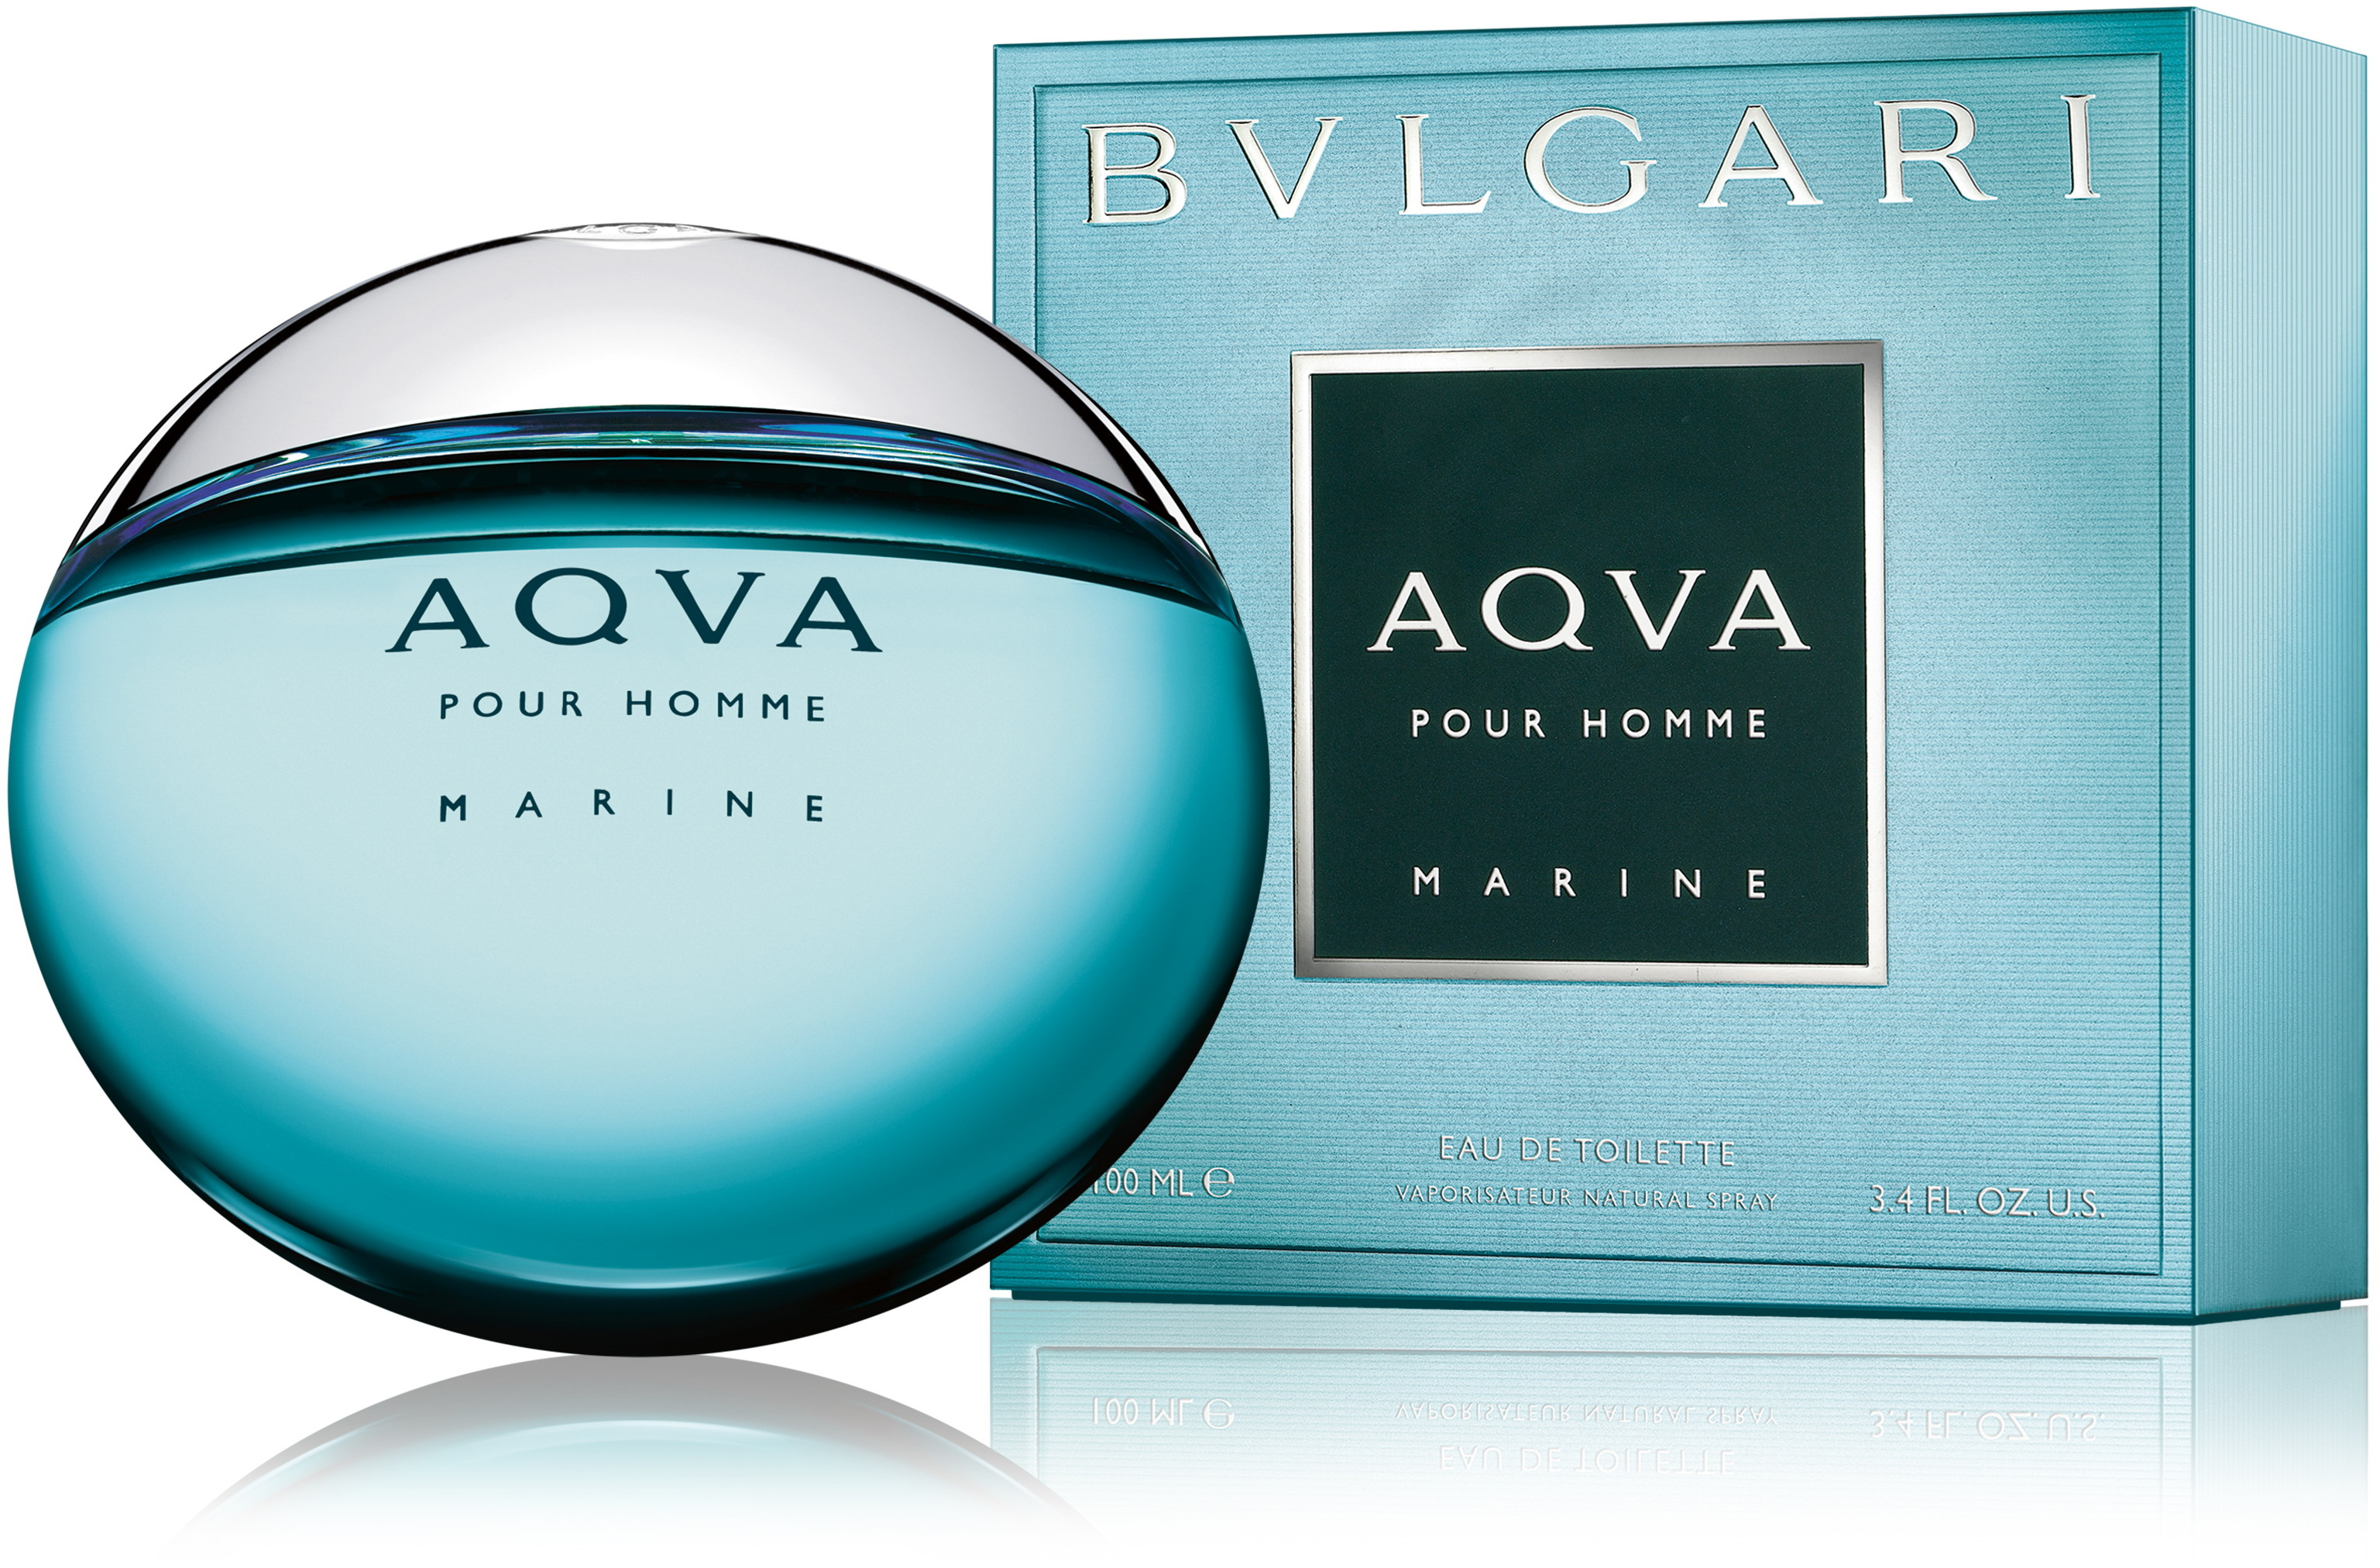 Bvlgari Aqva Pour Homme Marine 100ml in duty-free at airport Domodedovo